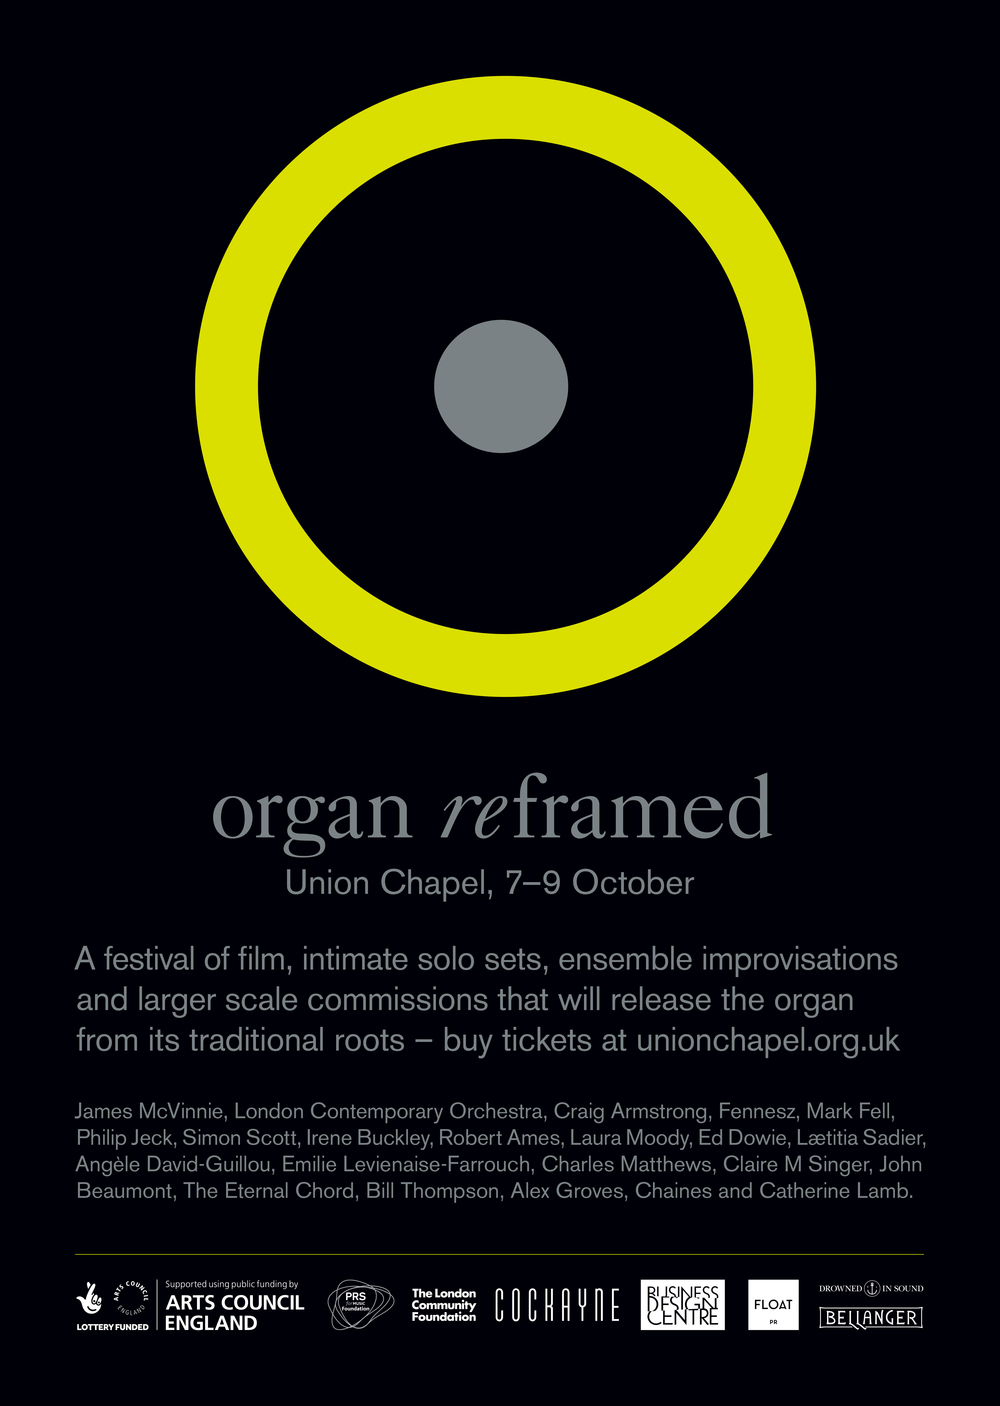 organ reframed